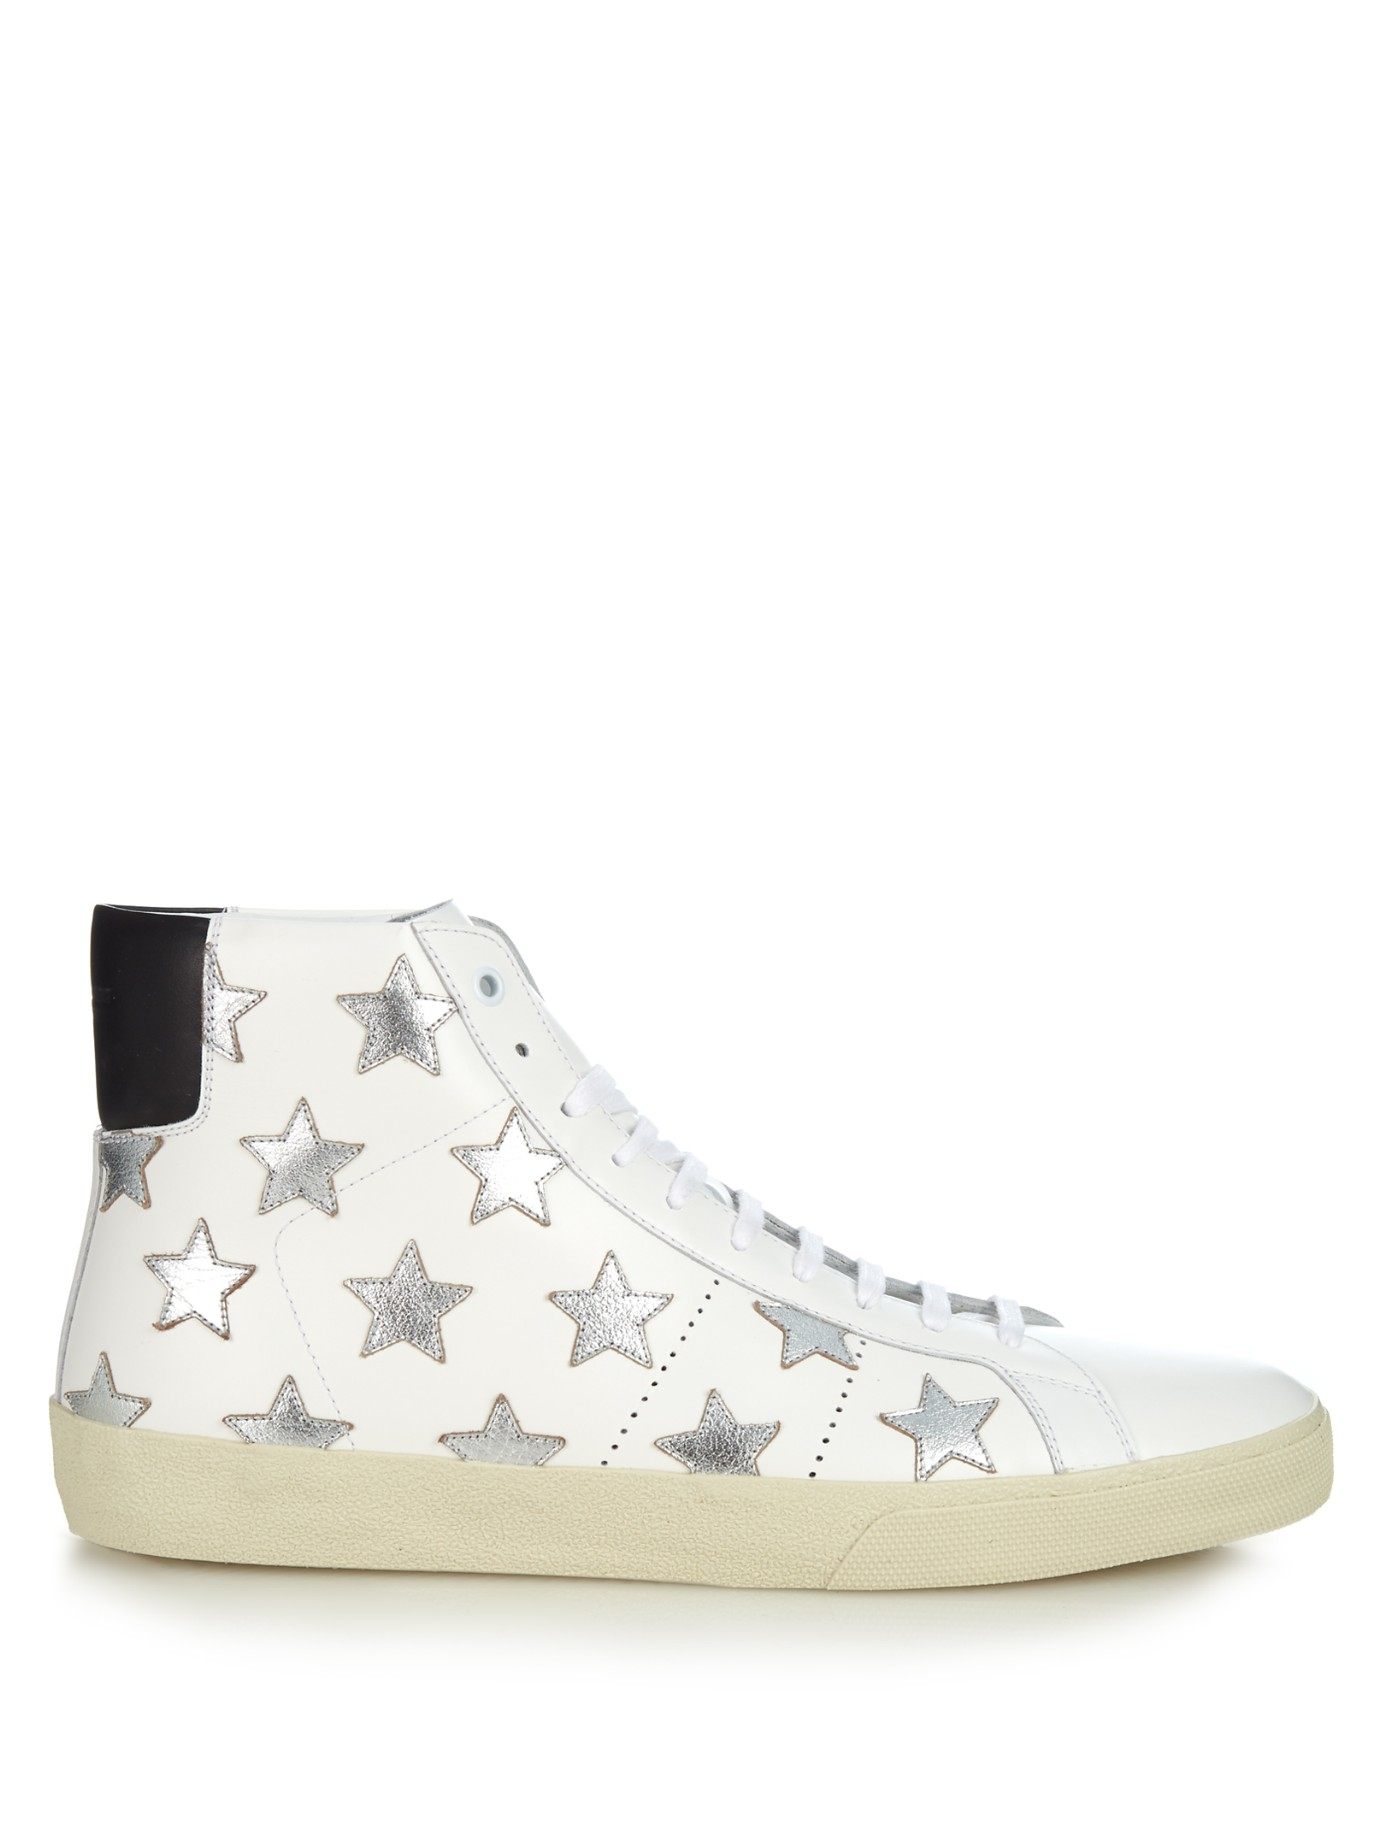 Saint LaurentLeather High Trainers